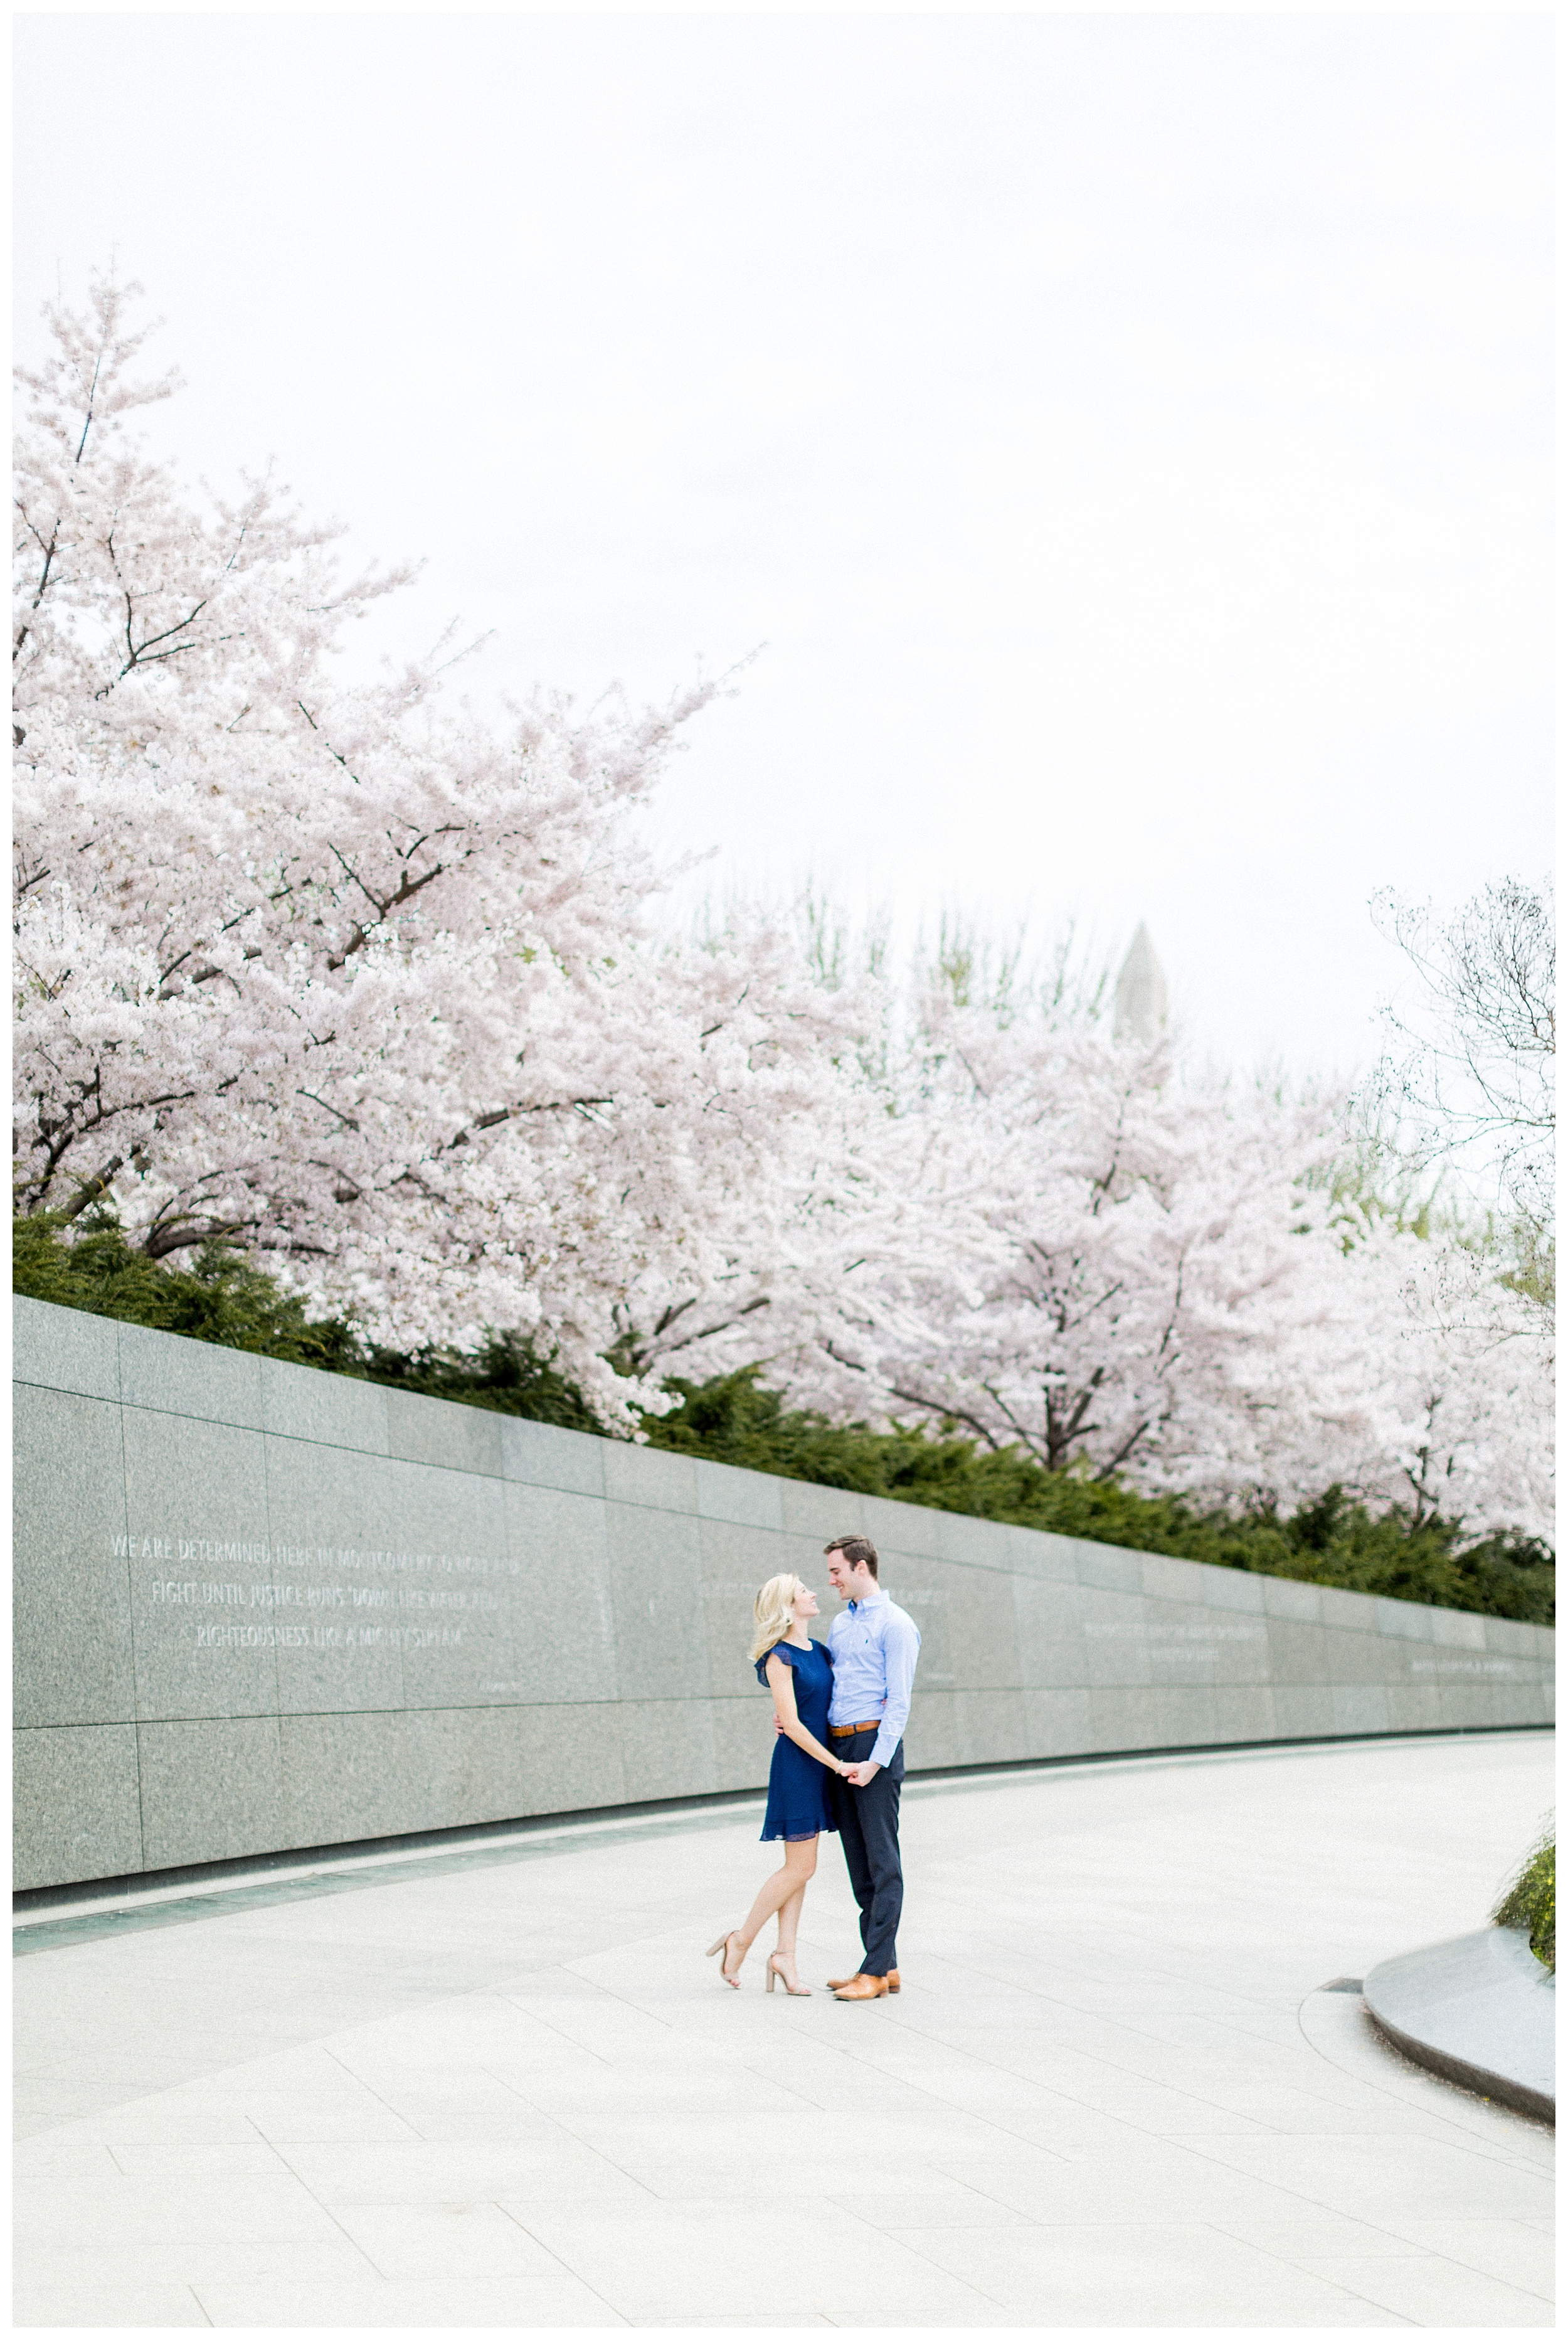 District of Columbia Cherry Blossom Engagement Session_0031.jpg